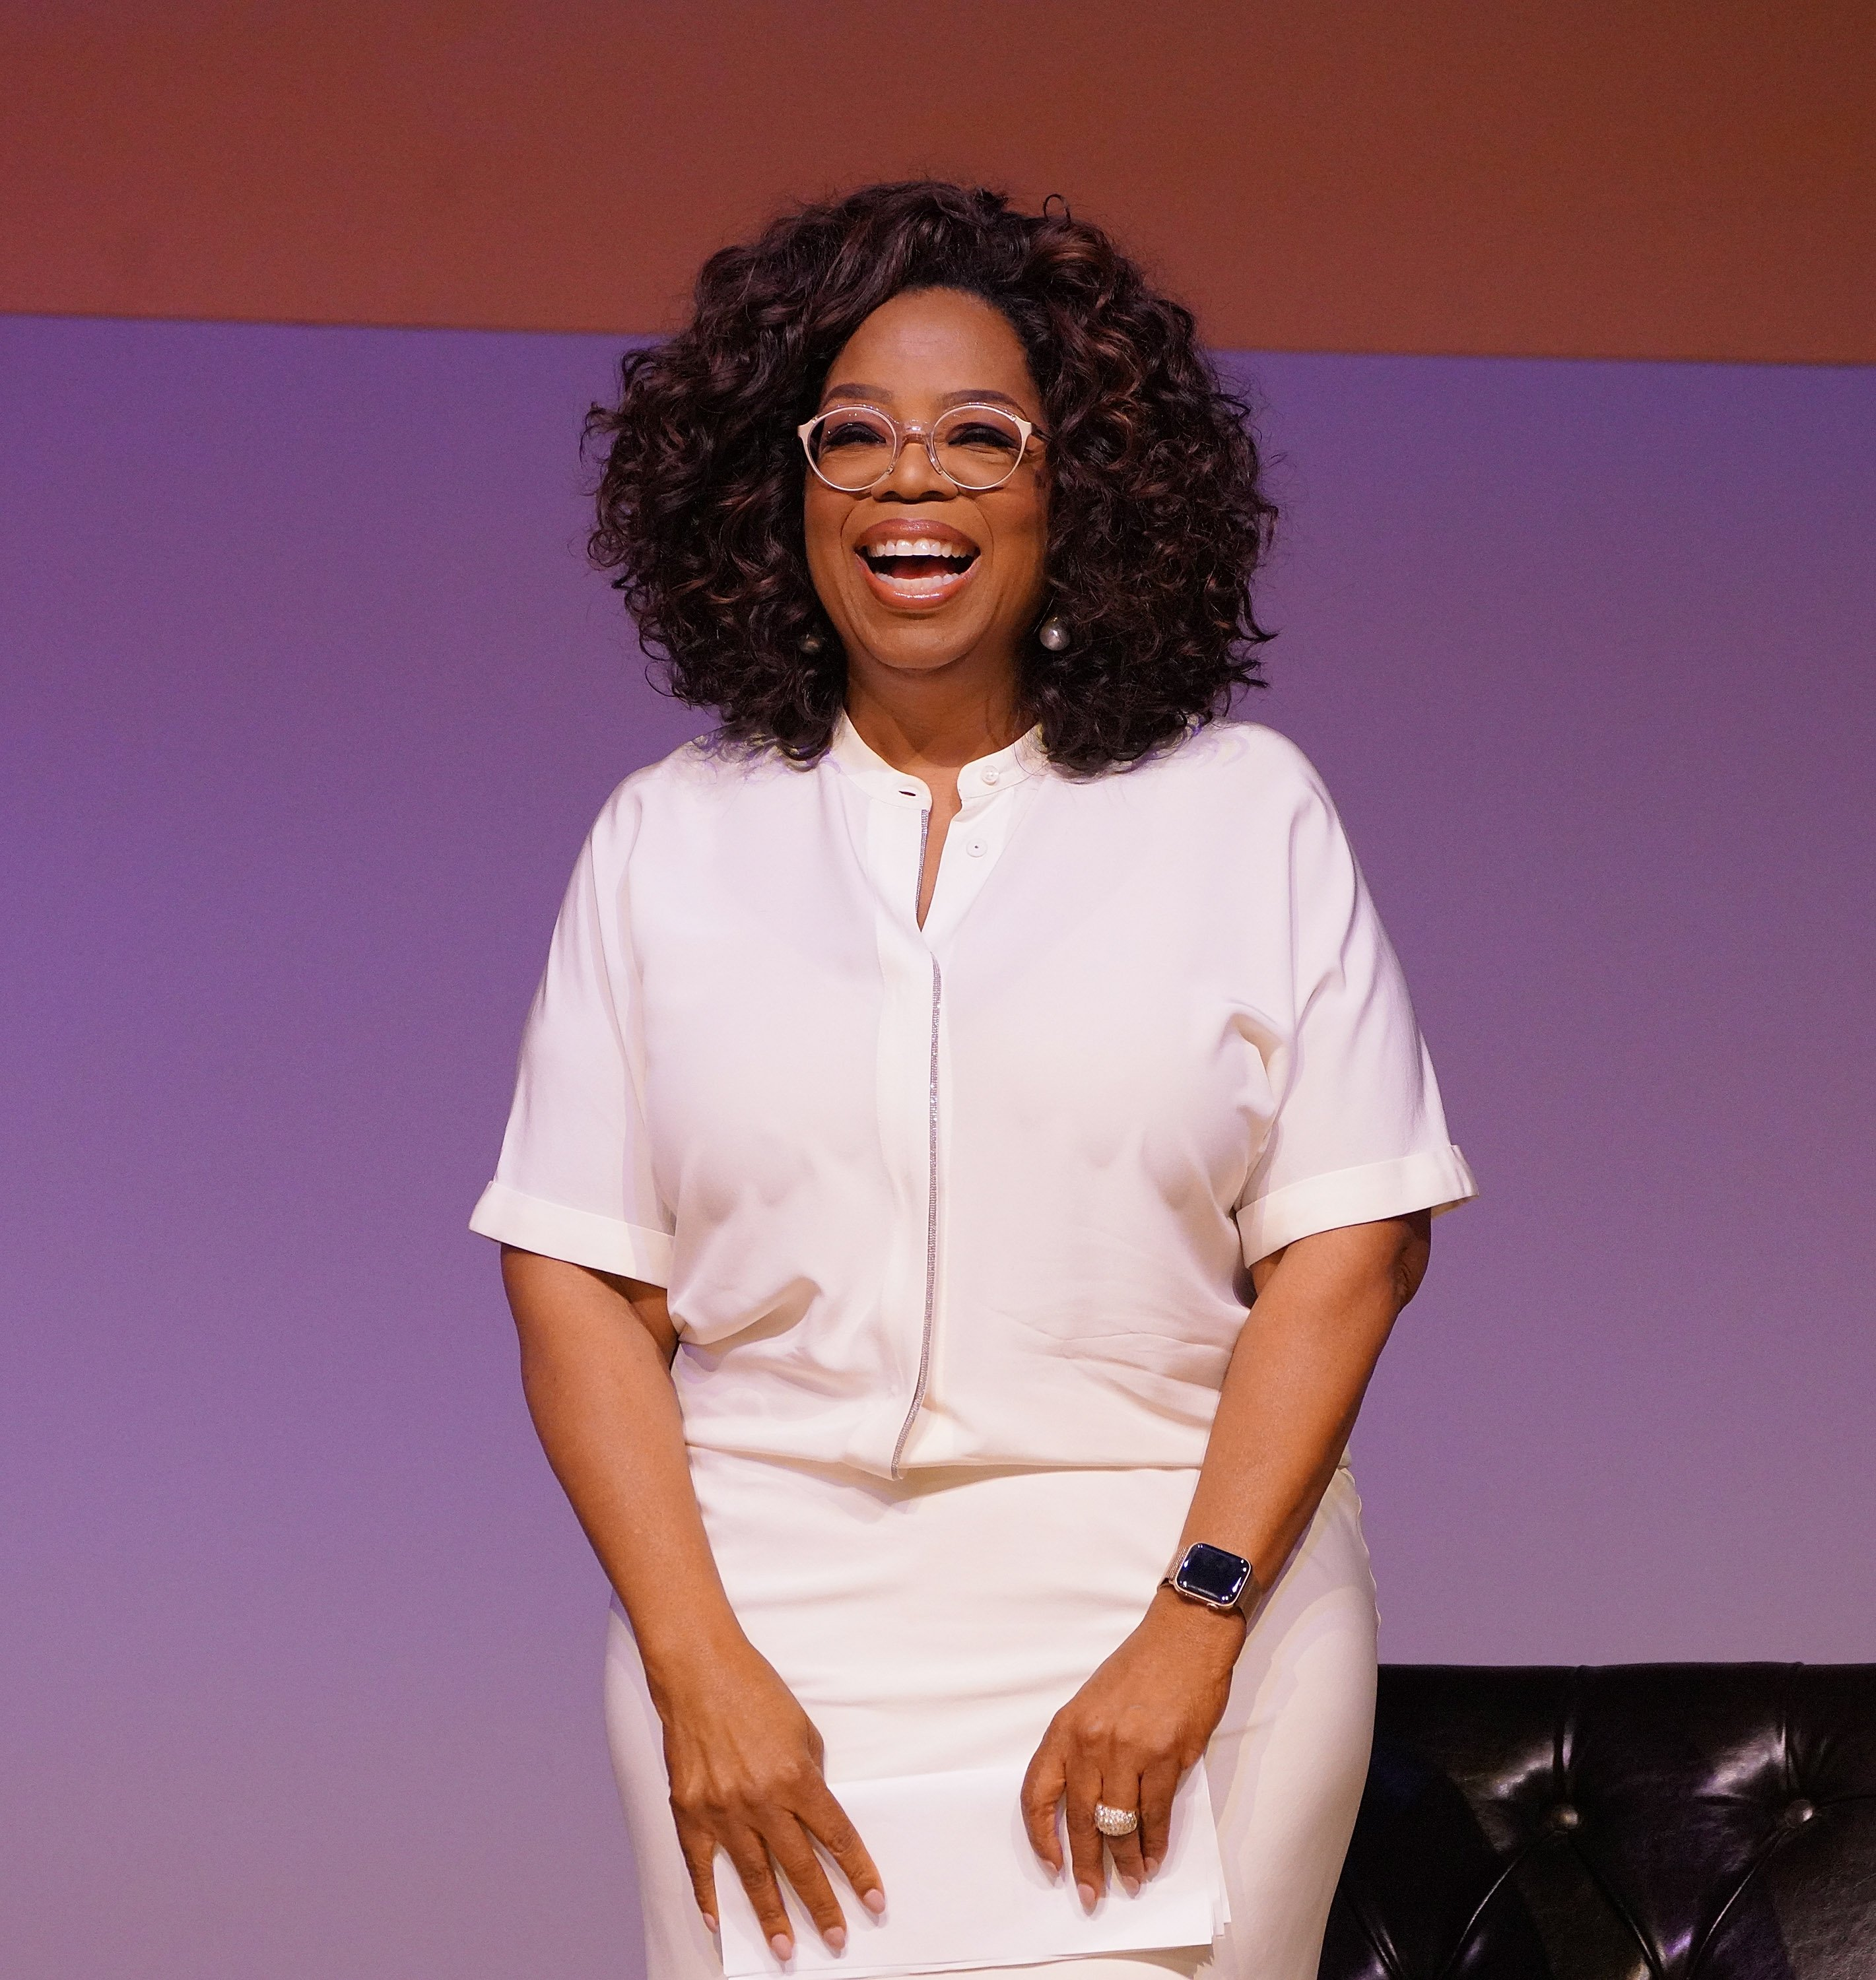 Oprah Winfrey on November 29, 2018 in Johannesburg, South Africa | Photo: Getty Images